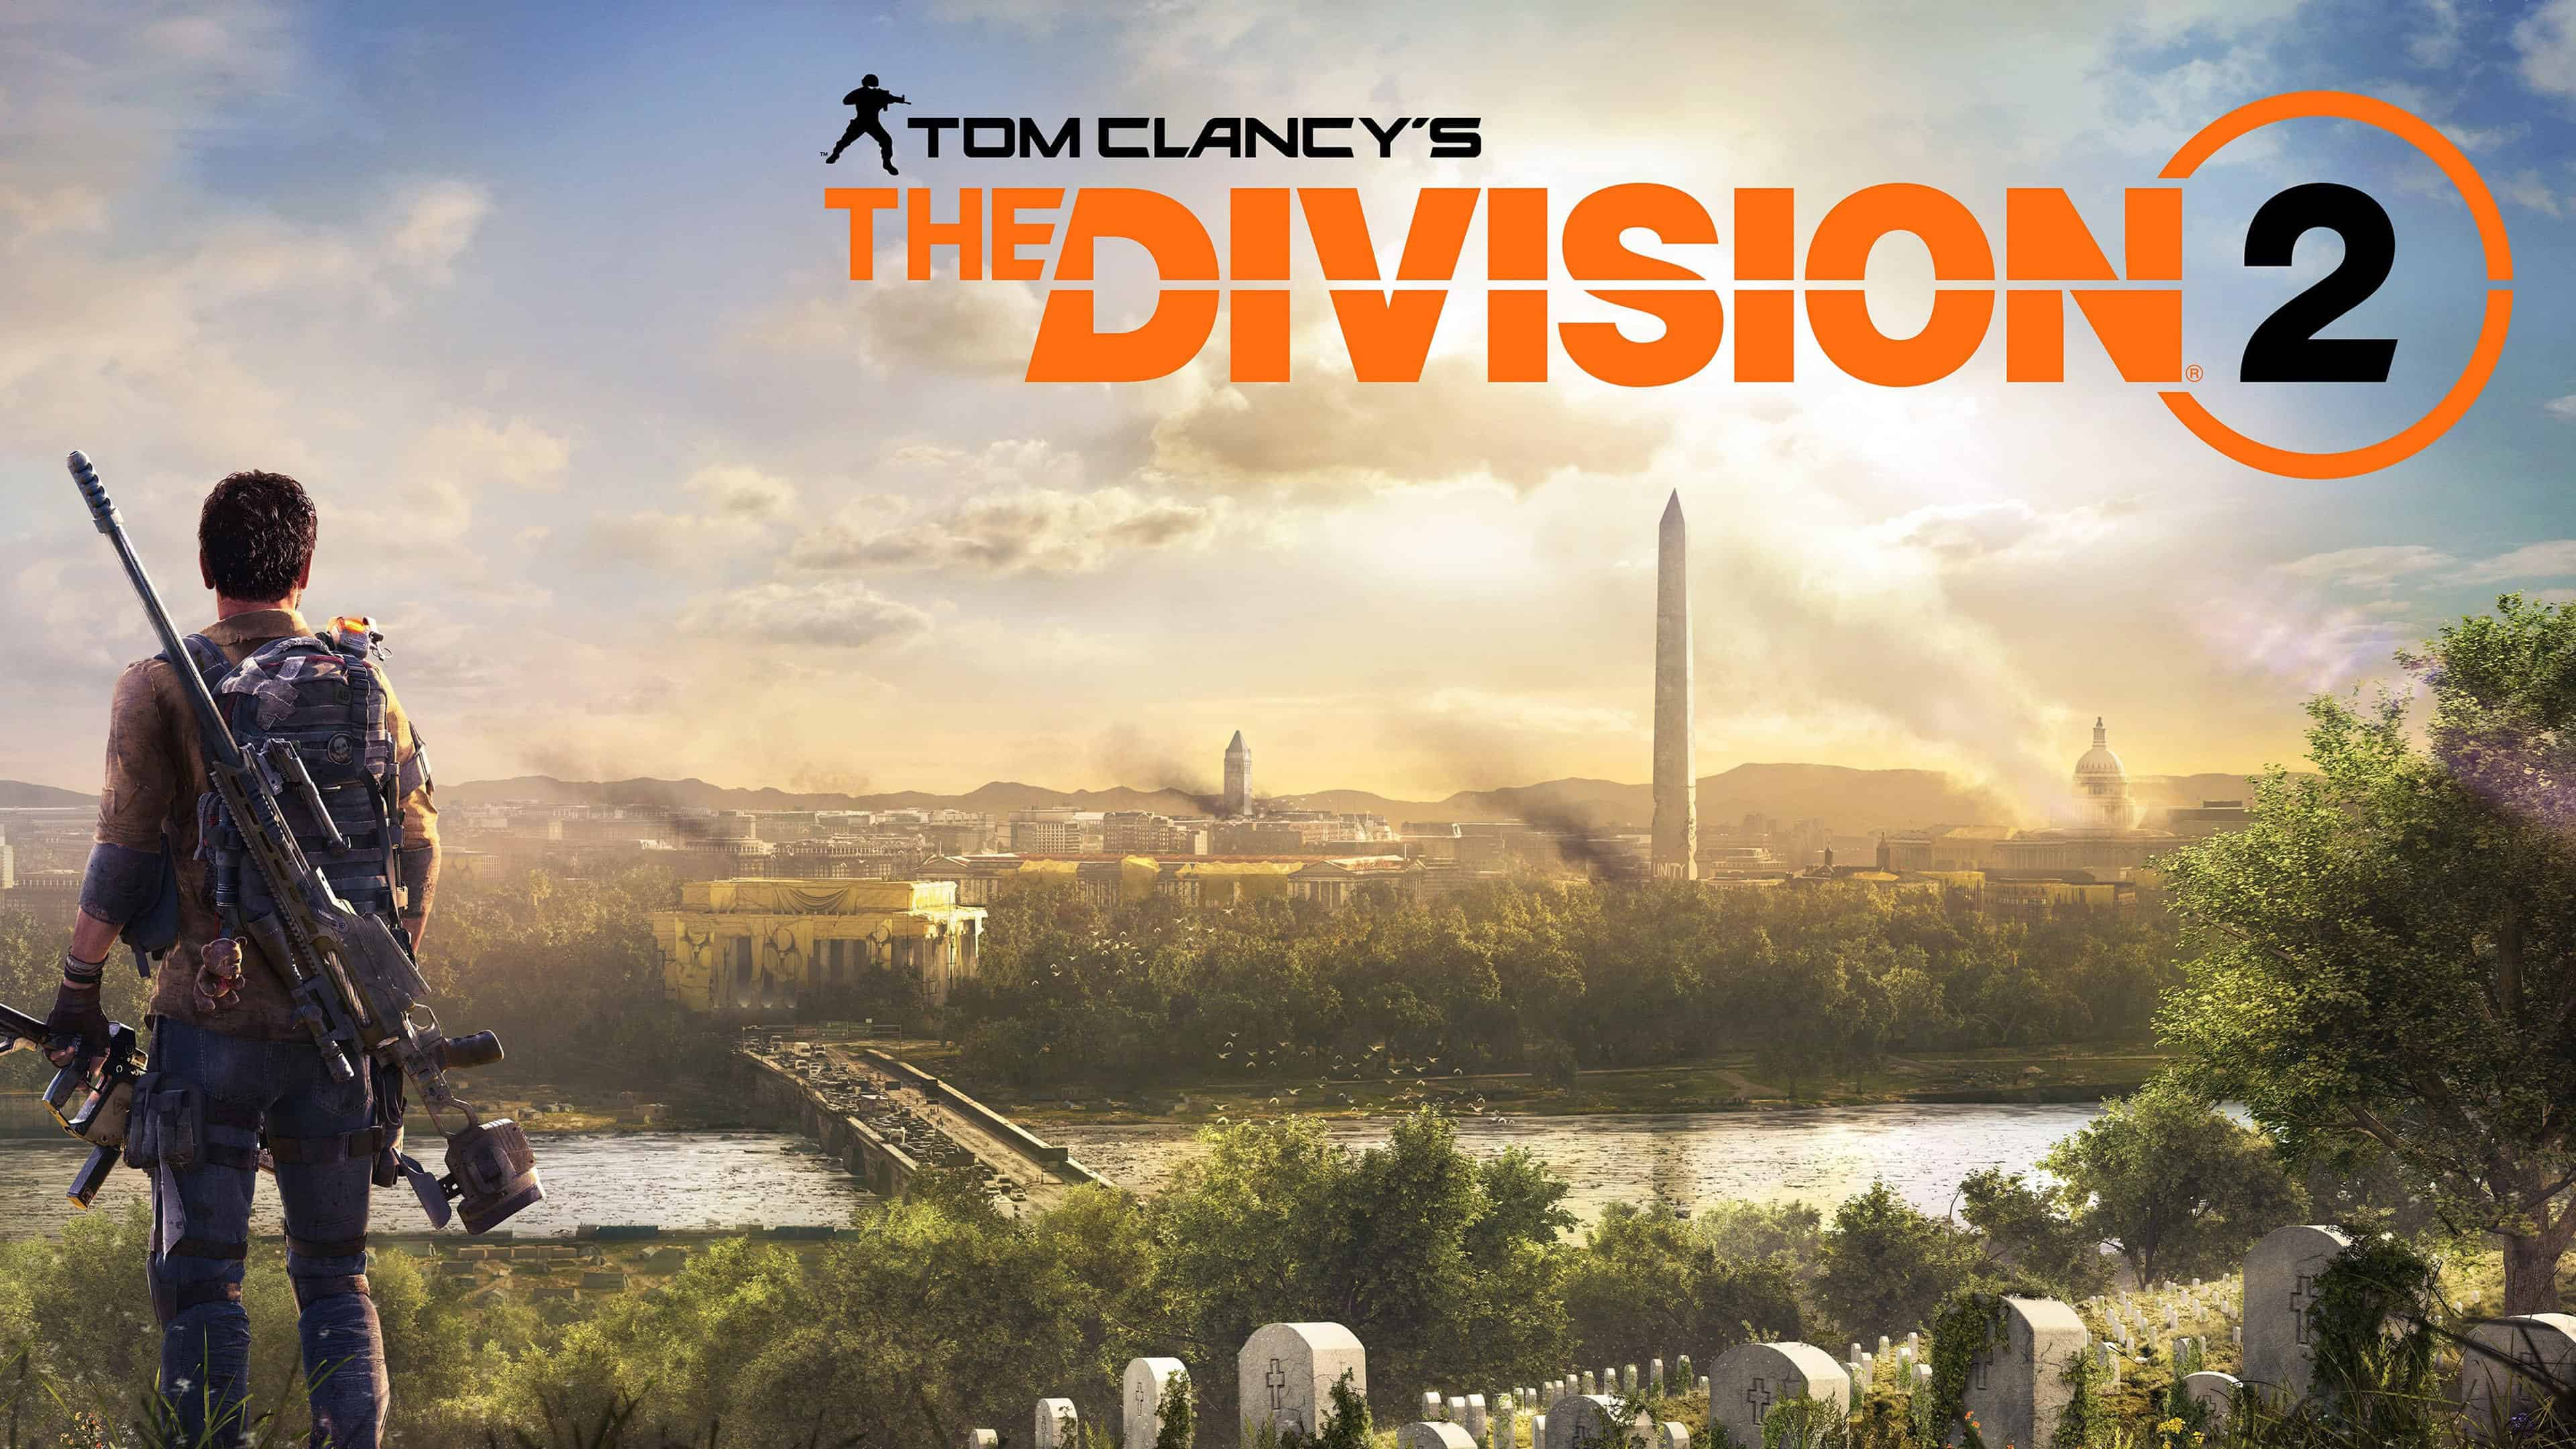 The division 2, tom clancy